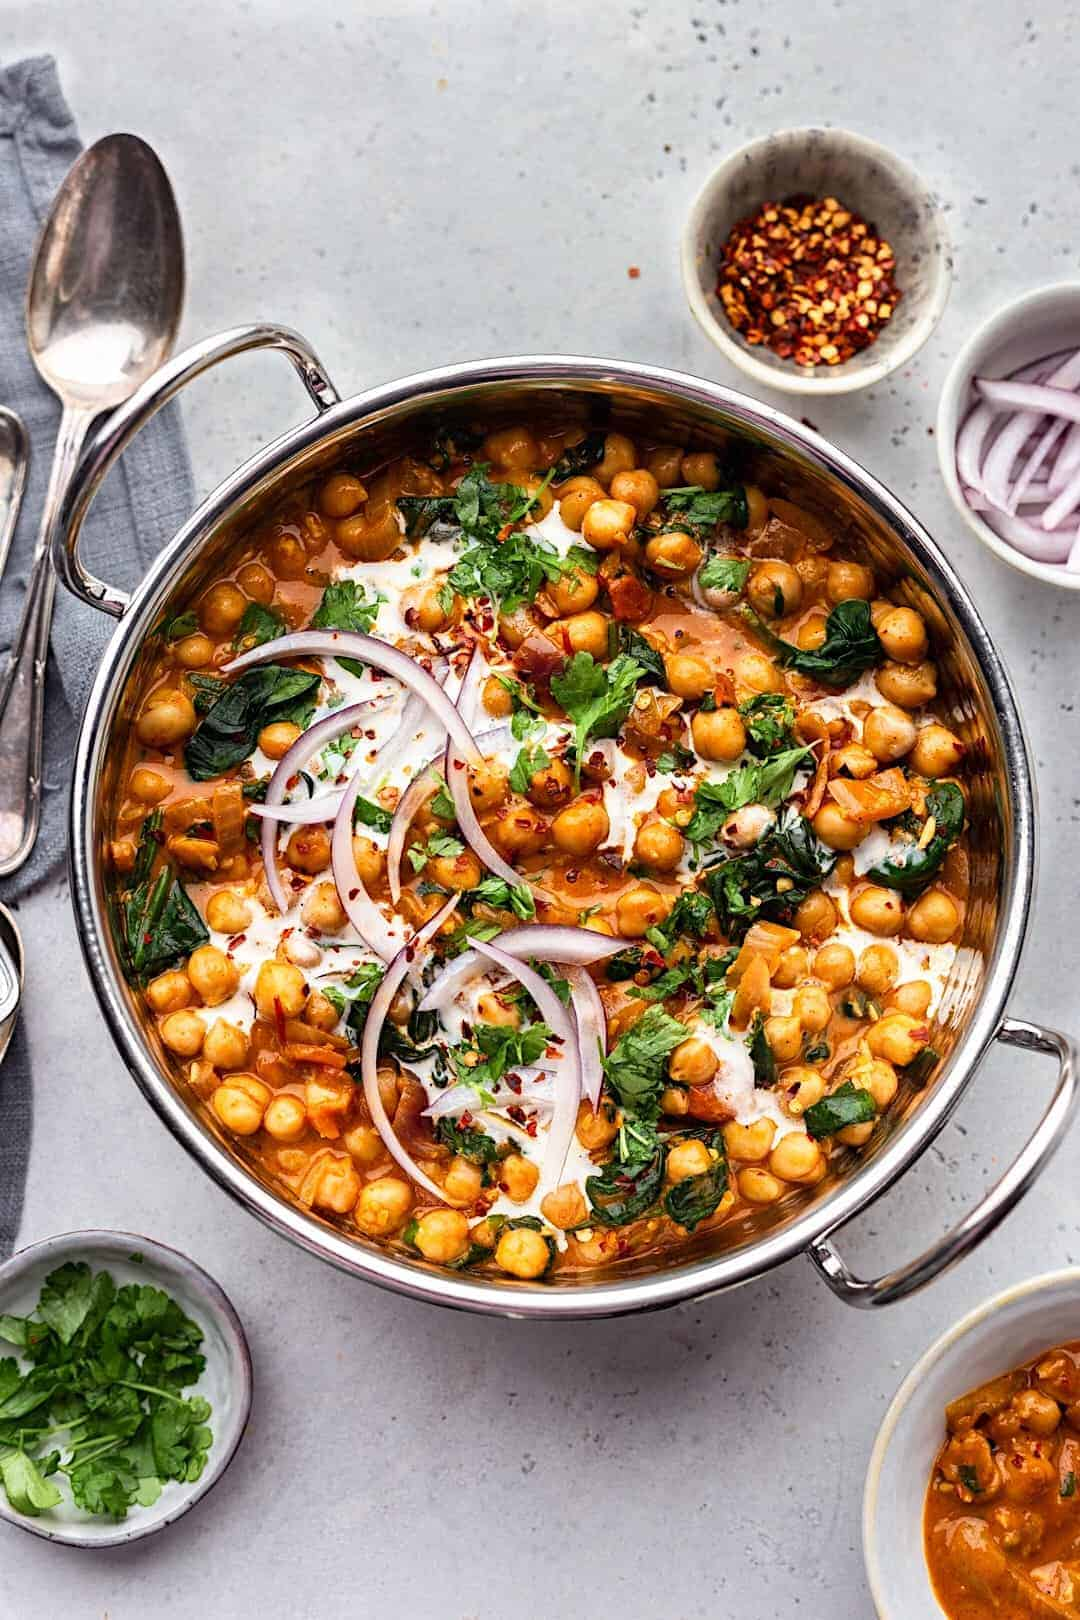 Vegan Chickpea and Spinach Curry #vegan #recipe #curry #chickpea #spinach #healthy